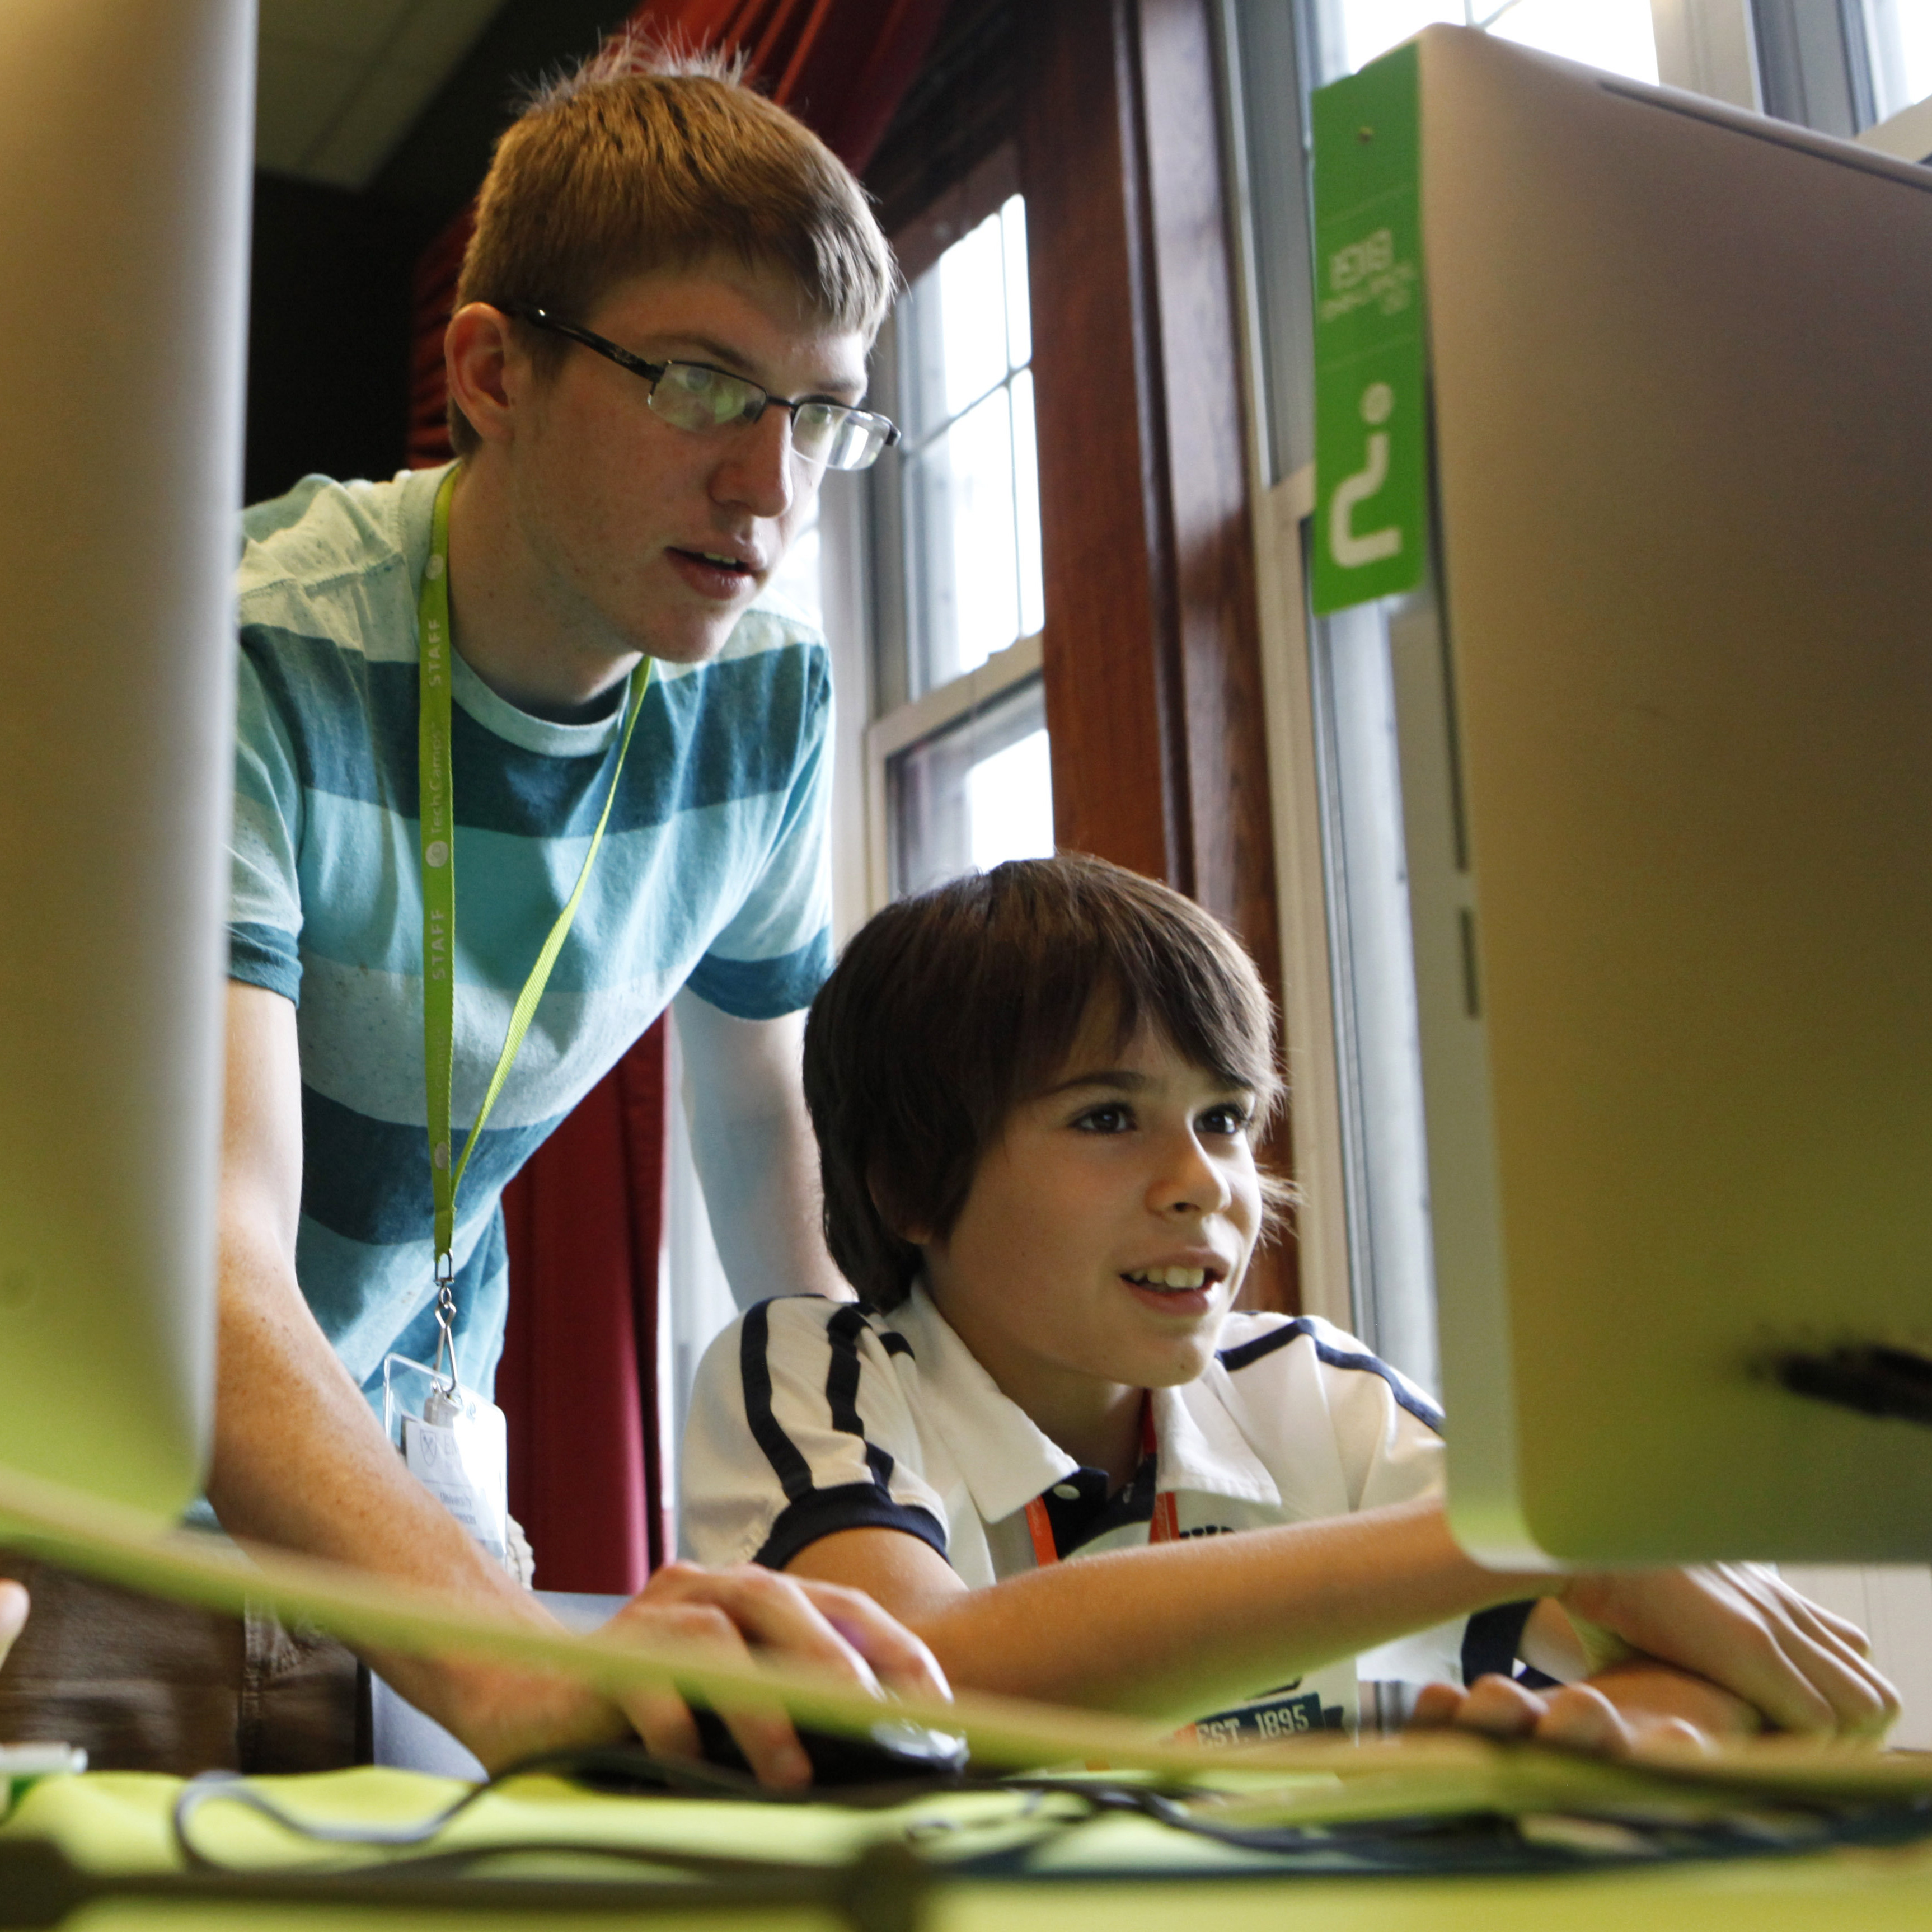 An instructor helps a young camper create a video game at a tech camp in Atlanta for kids to learn how to code.